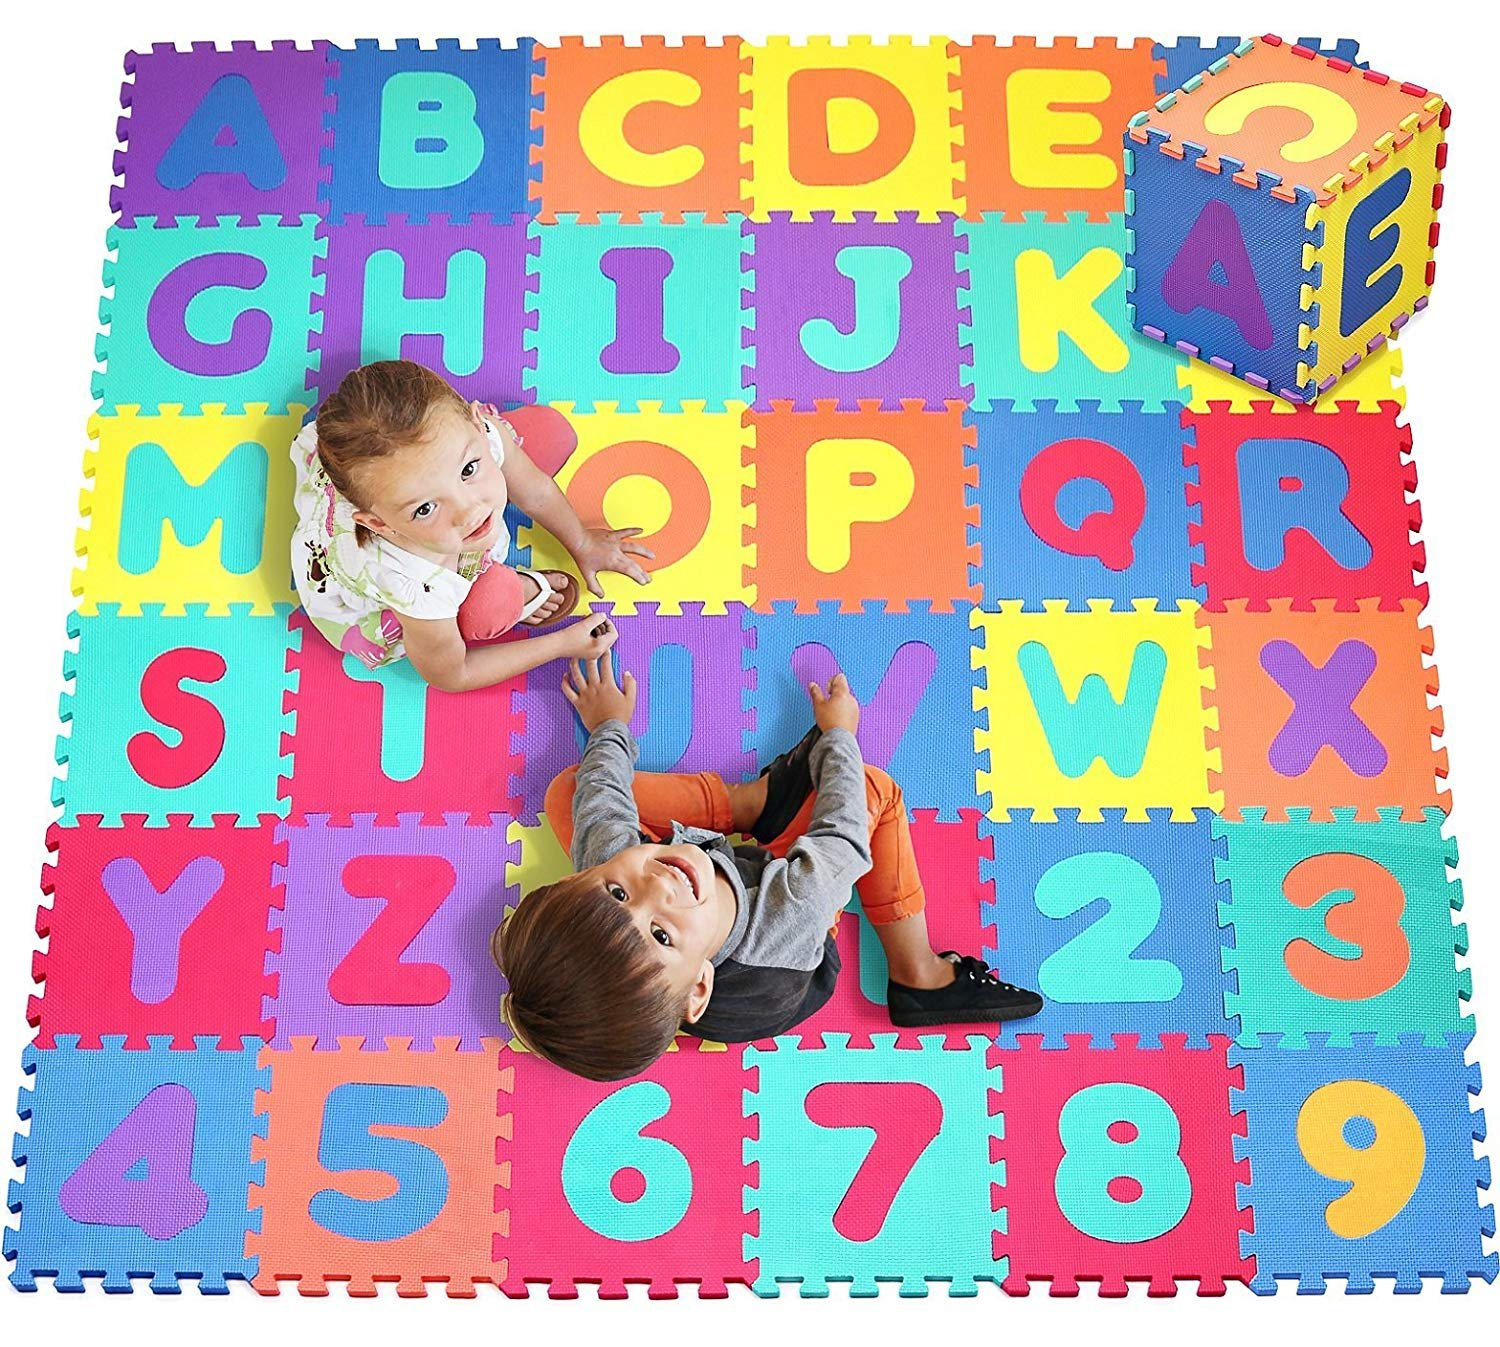 Alphabet & Numbers Rubber EVA Foam Puzzle Play Mat Floor. 36 Interlocking playmat Tiles (Tile:12X12 Inch/36 Sq.feet Coverage). Ideal for Crawling Baby, Infant, Classroom, Toddlers, Kids, Gym Workout by Deke Home